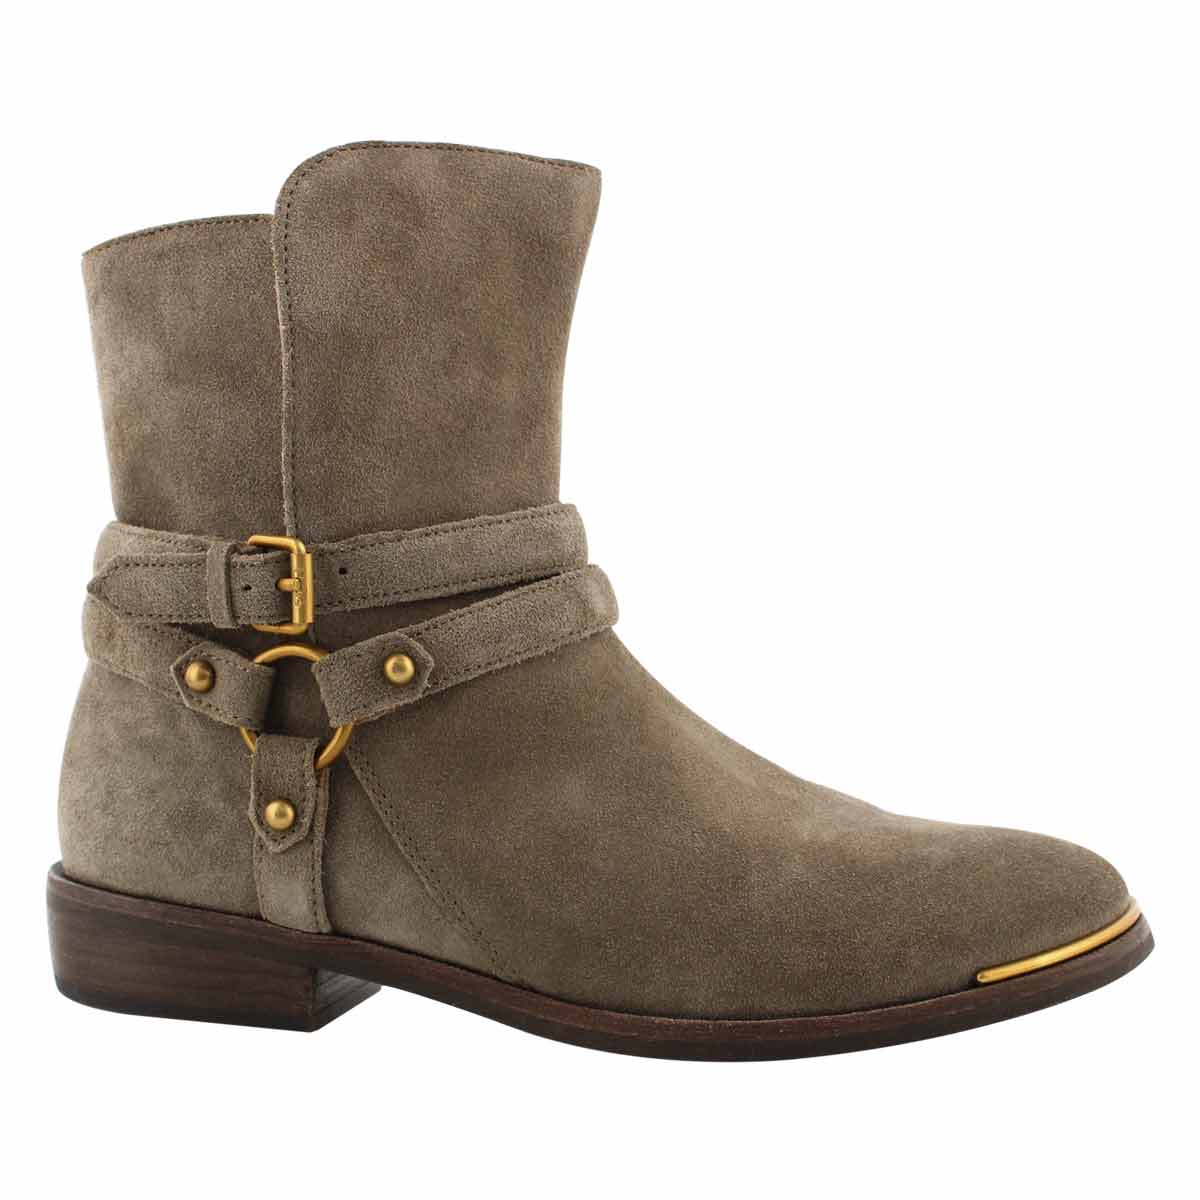 Lds Kelby mouse casual ankle boot